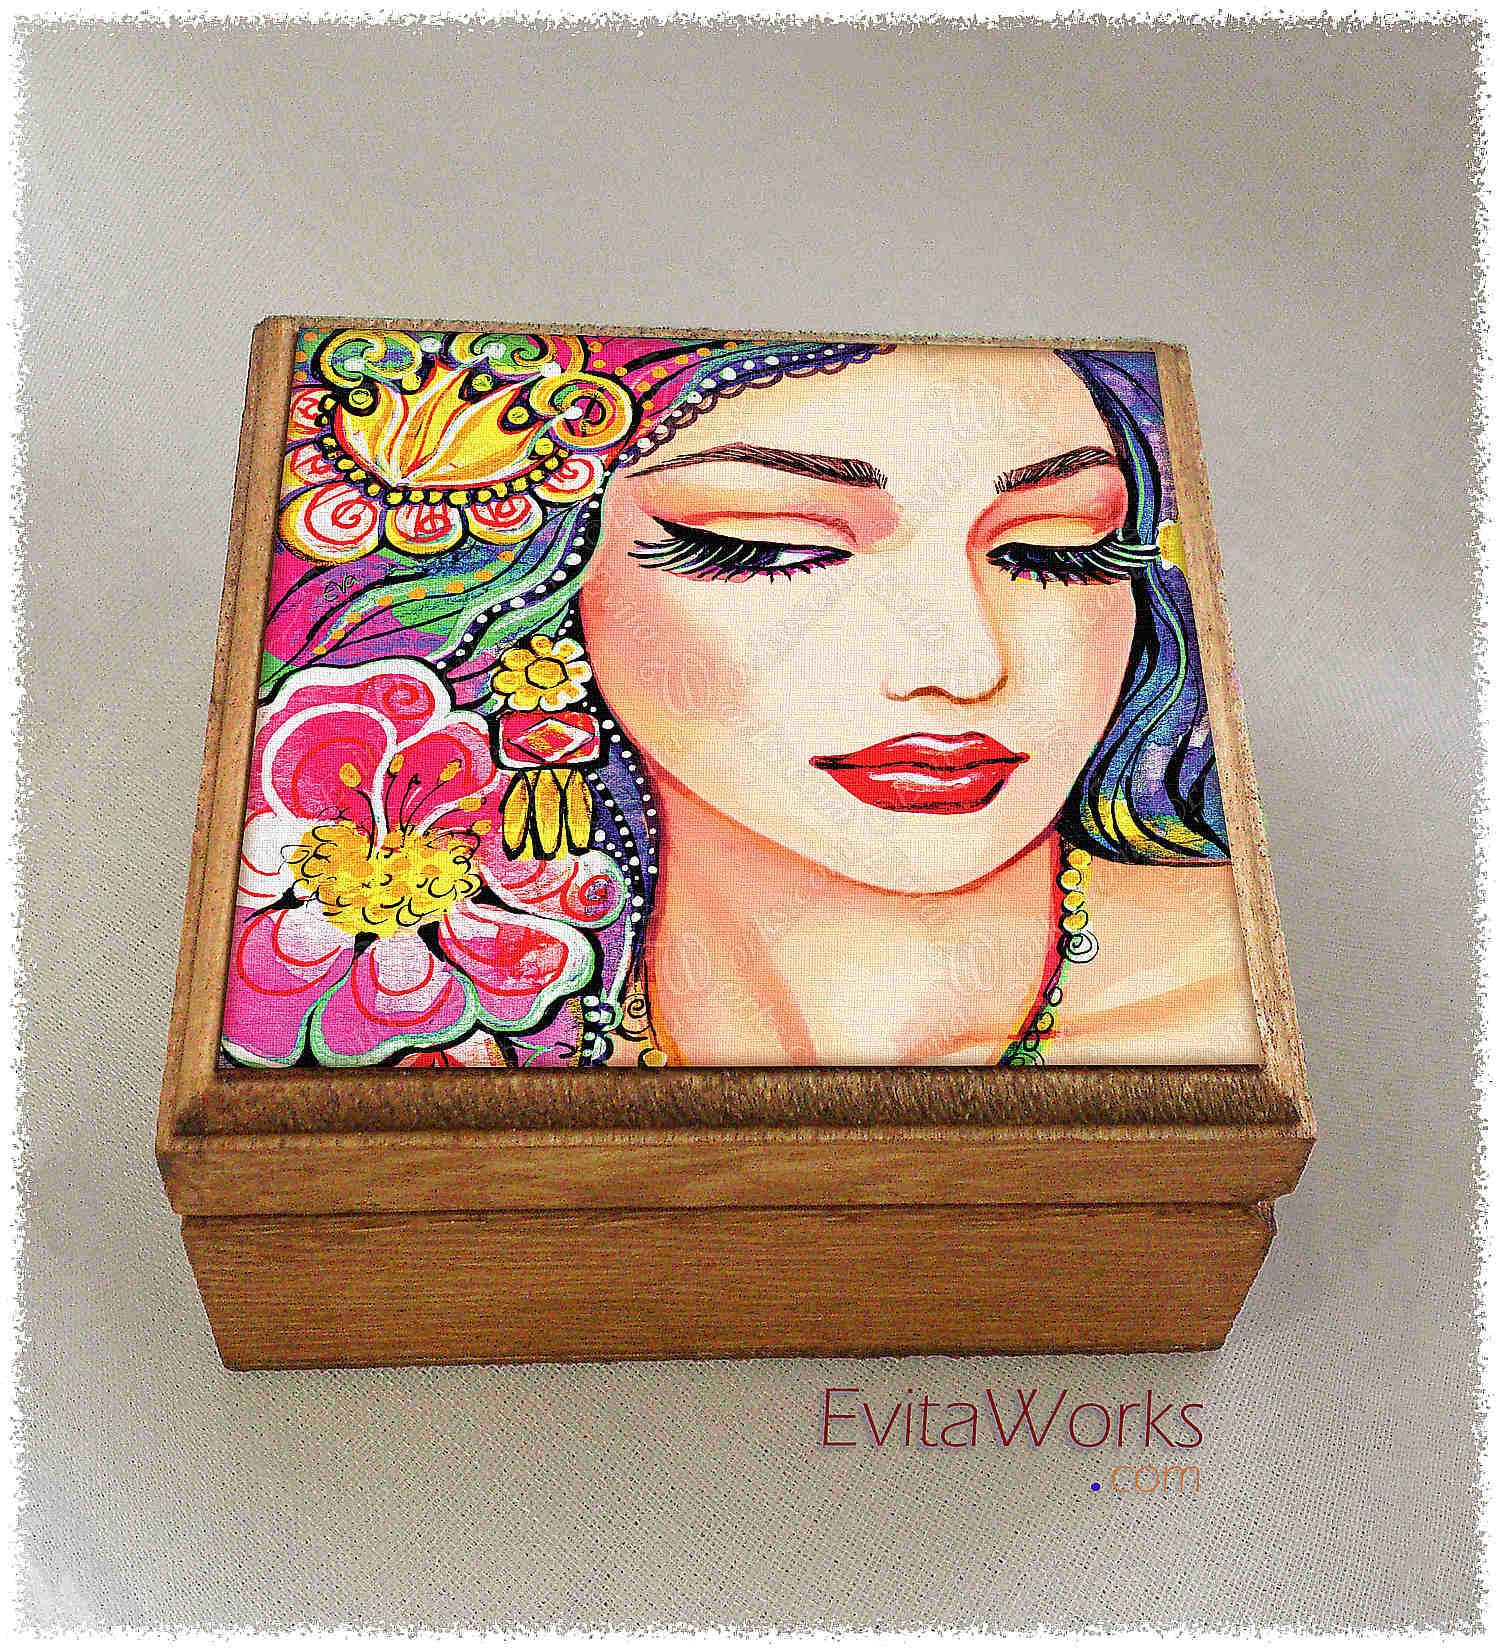 East Woman 21 Boxsq ~ EvitaWorks